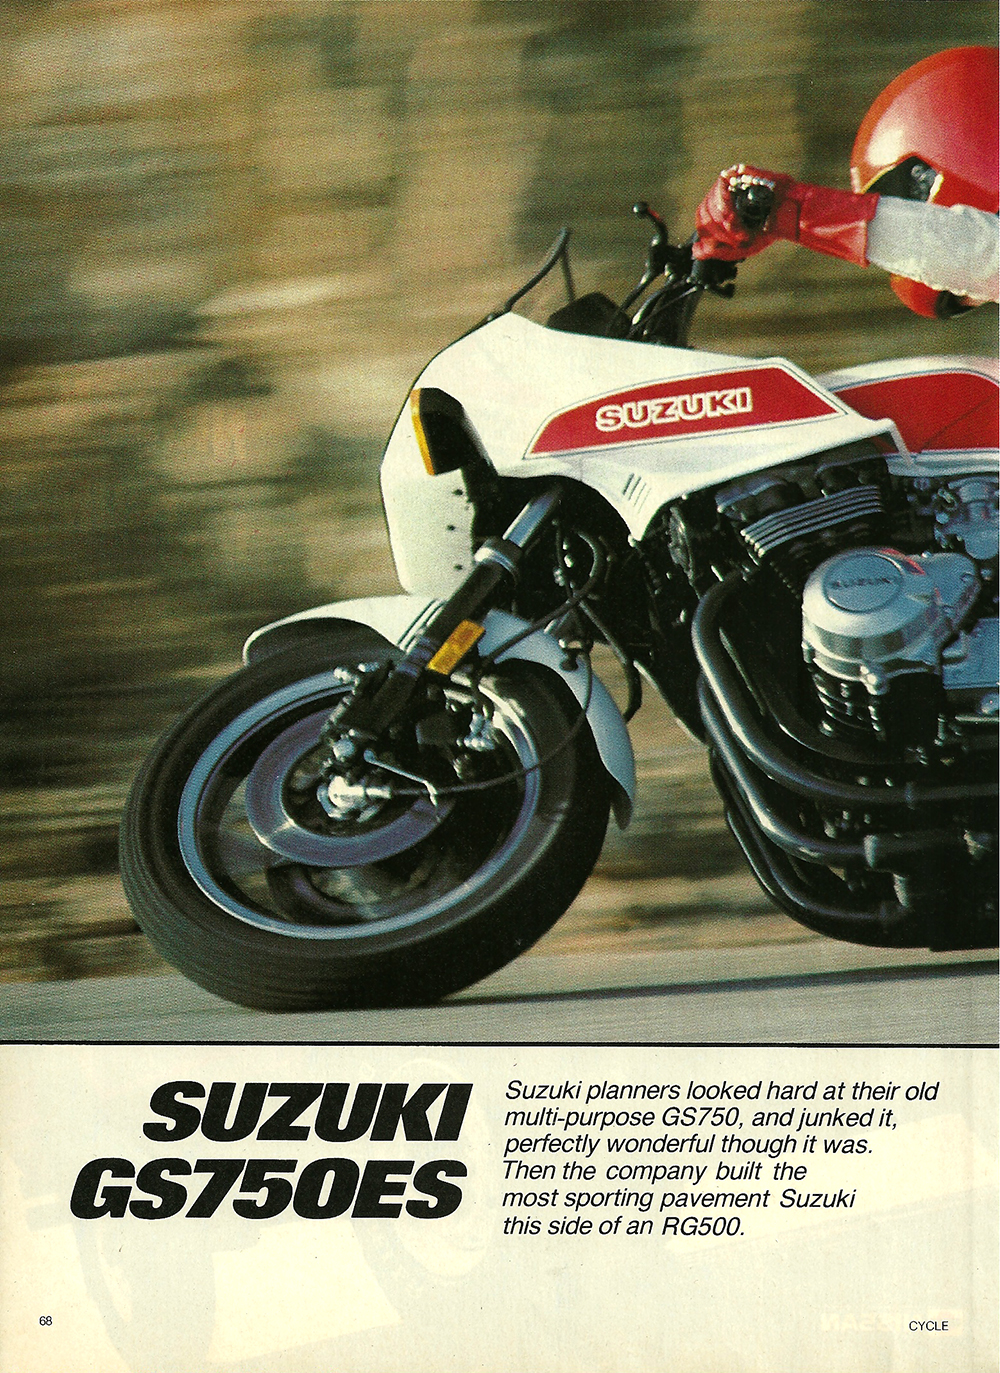 1983 Suzuki GS750ES road test 1.jpg